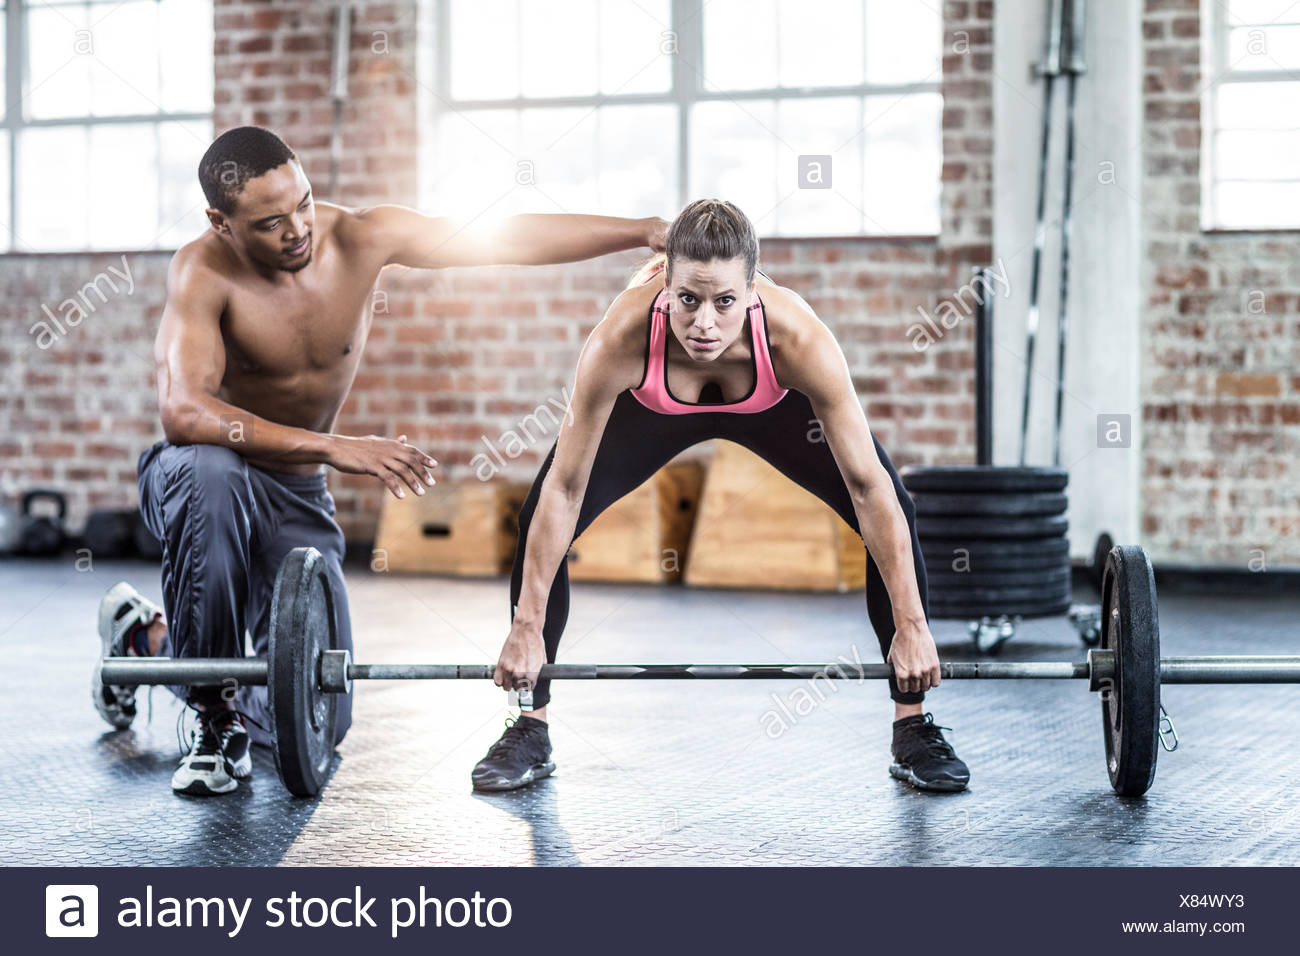 Trainer helping woman with lifting barbell Stock Photo